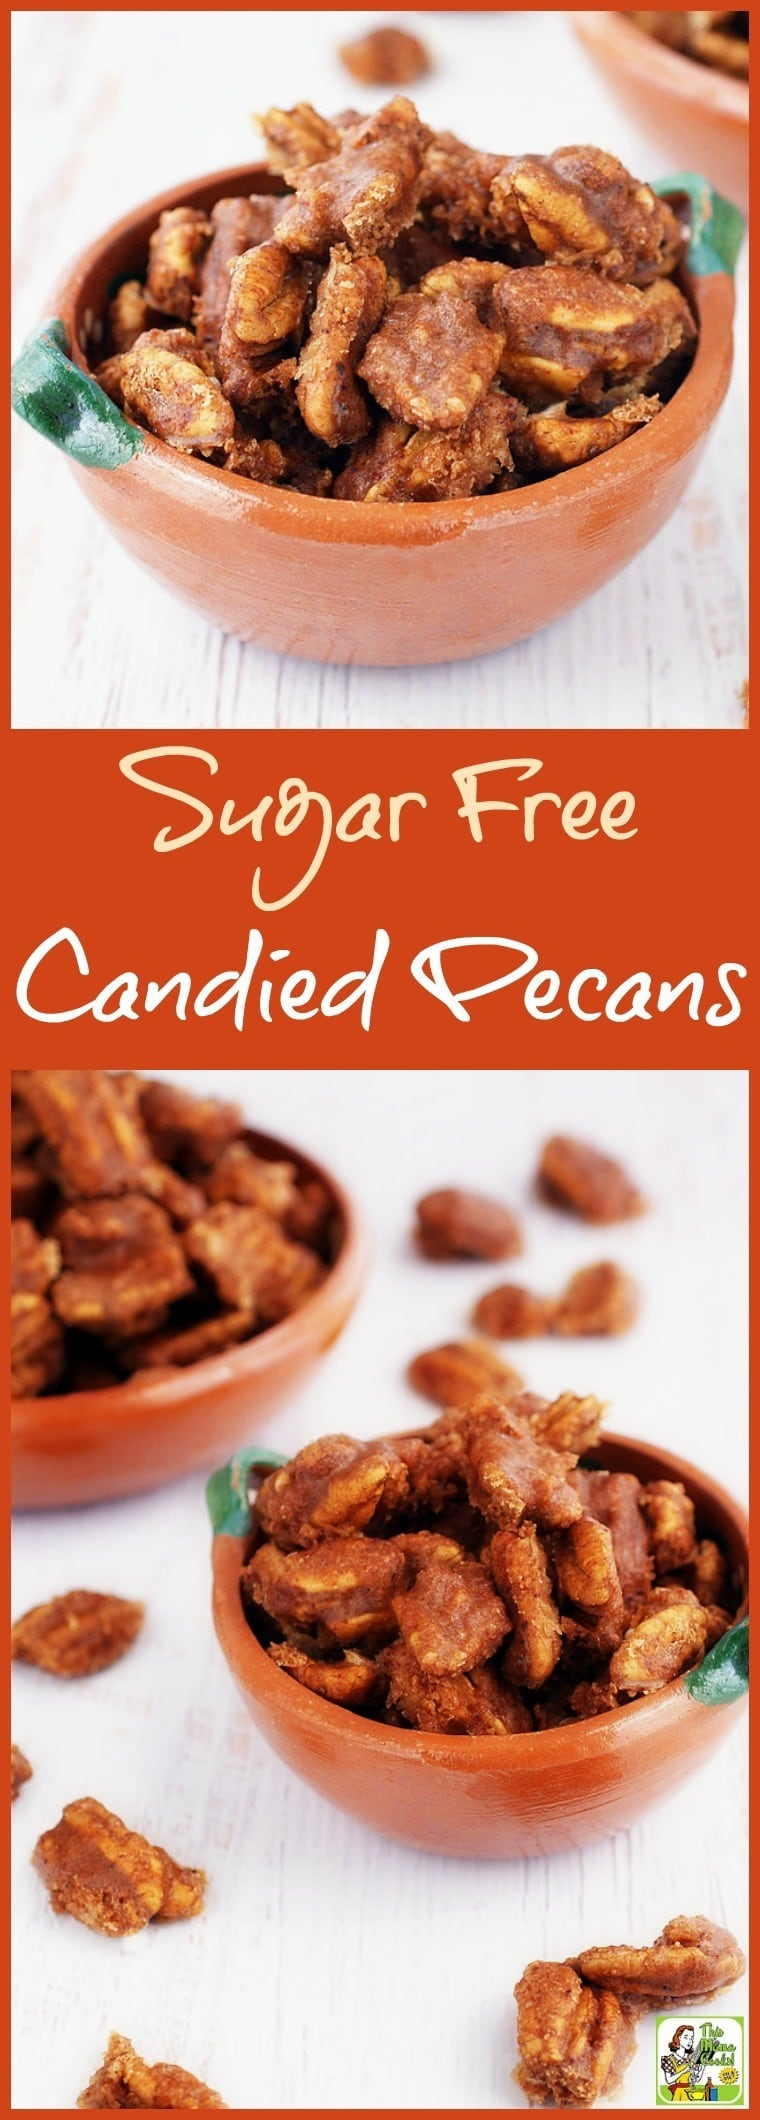 Sugar Free Candied Pecans This Mama Cooks On A Diet